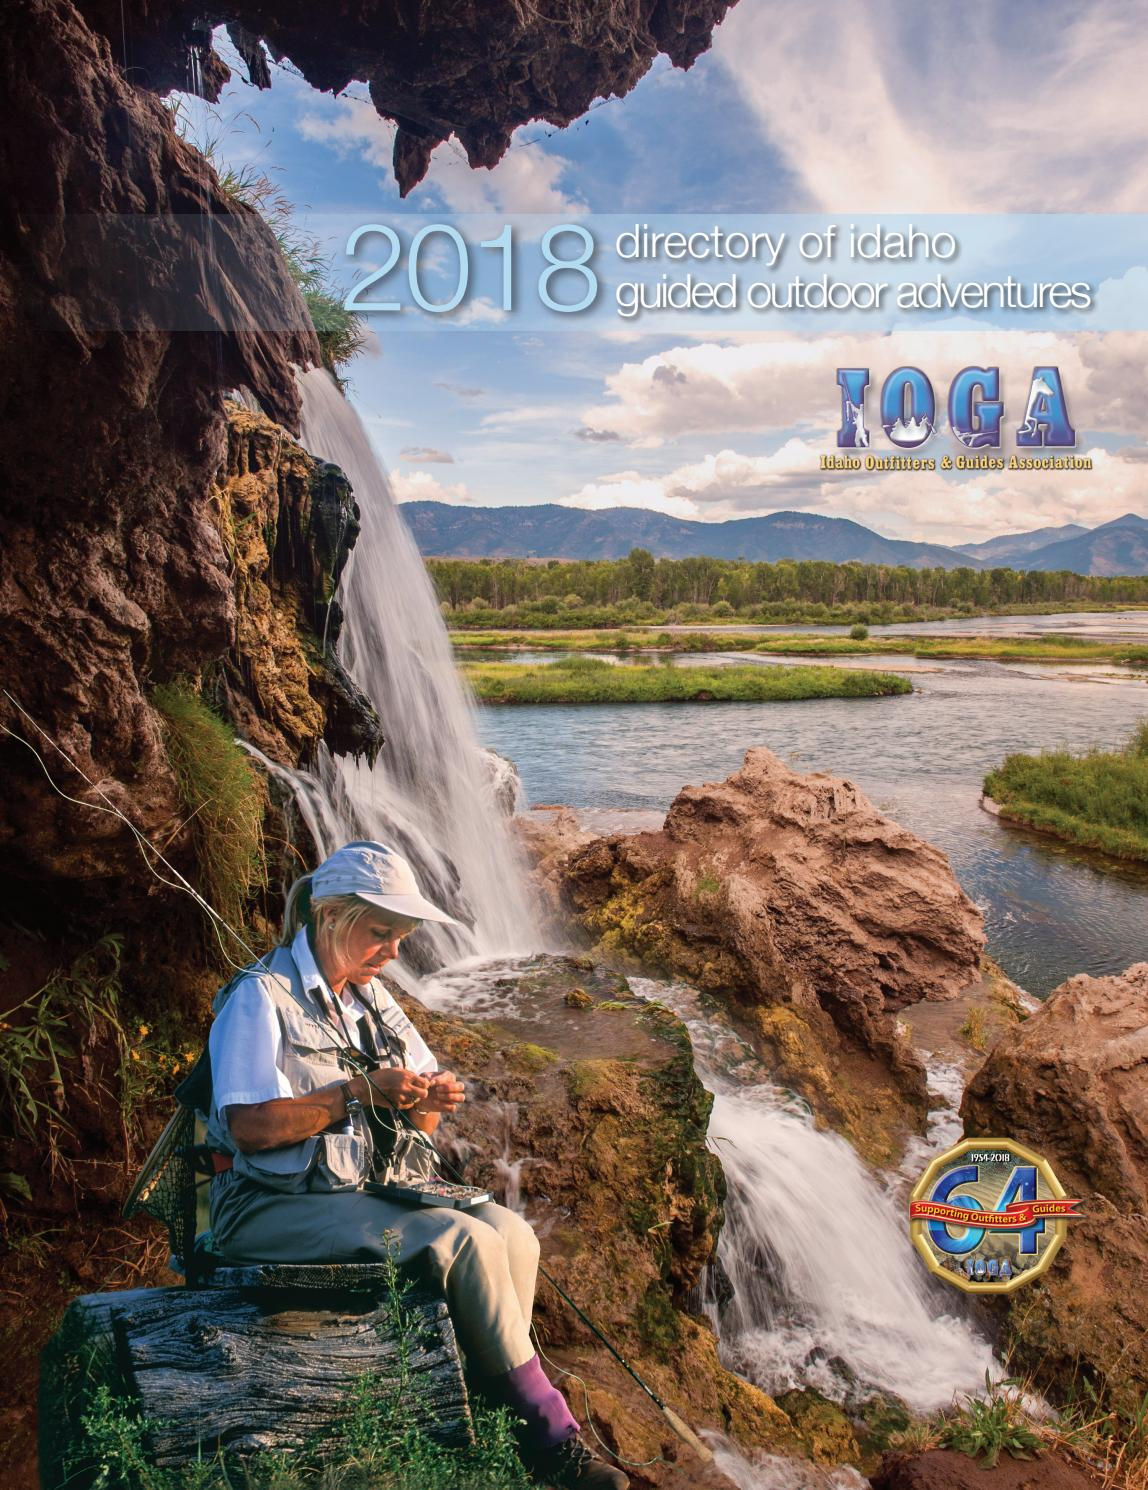 2018 Directory of Idaho Guided Outdoor Adventures by Visit